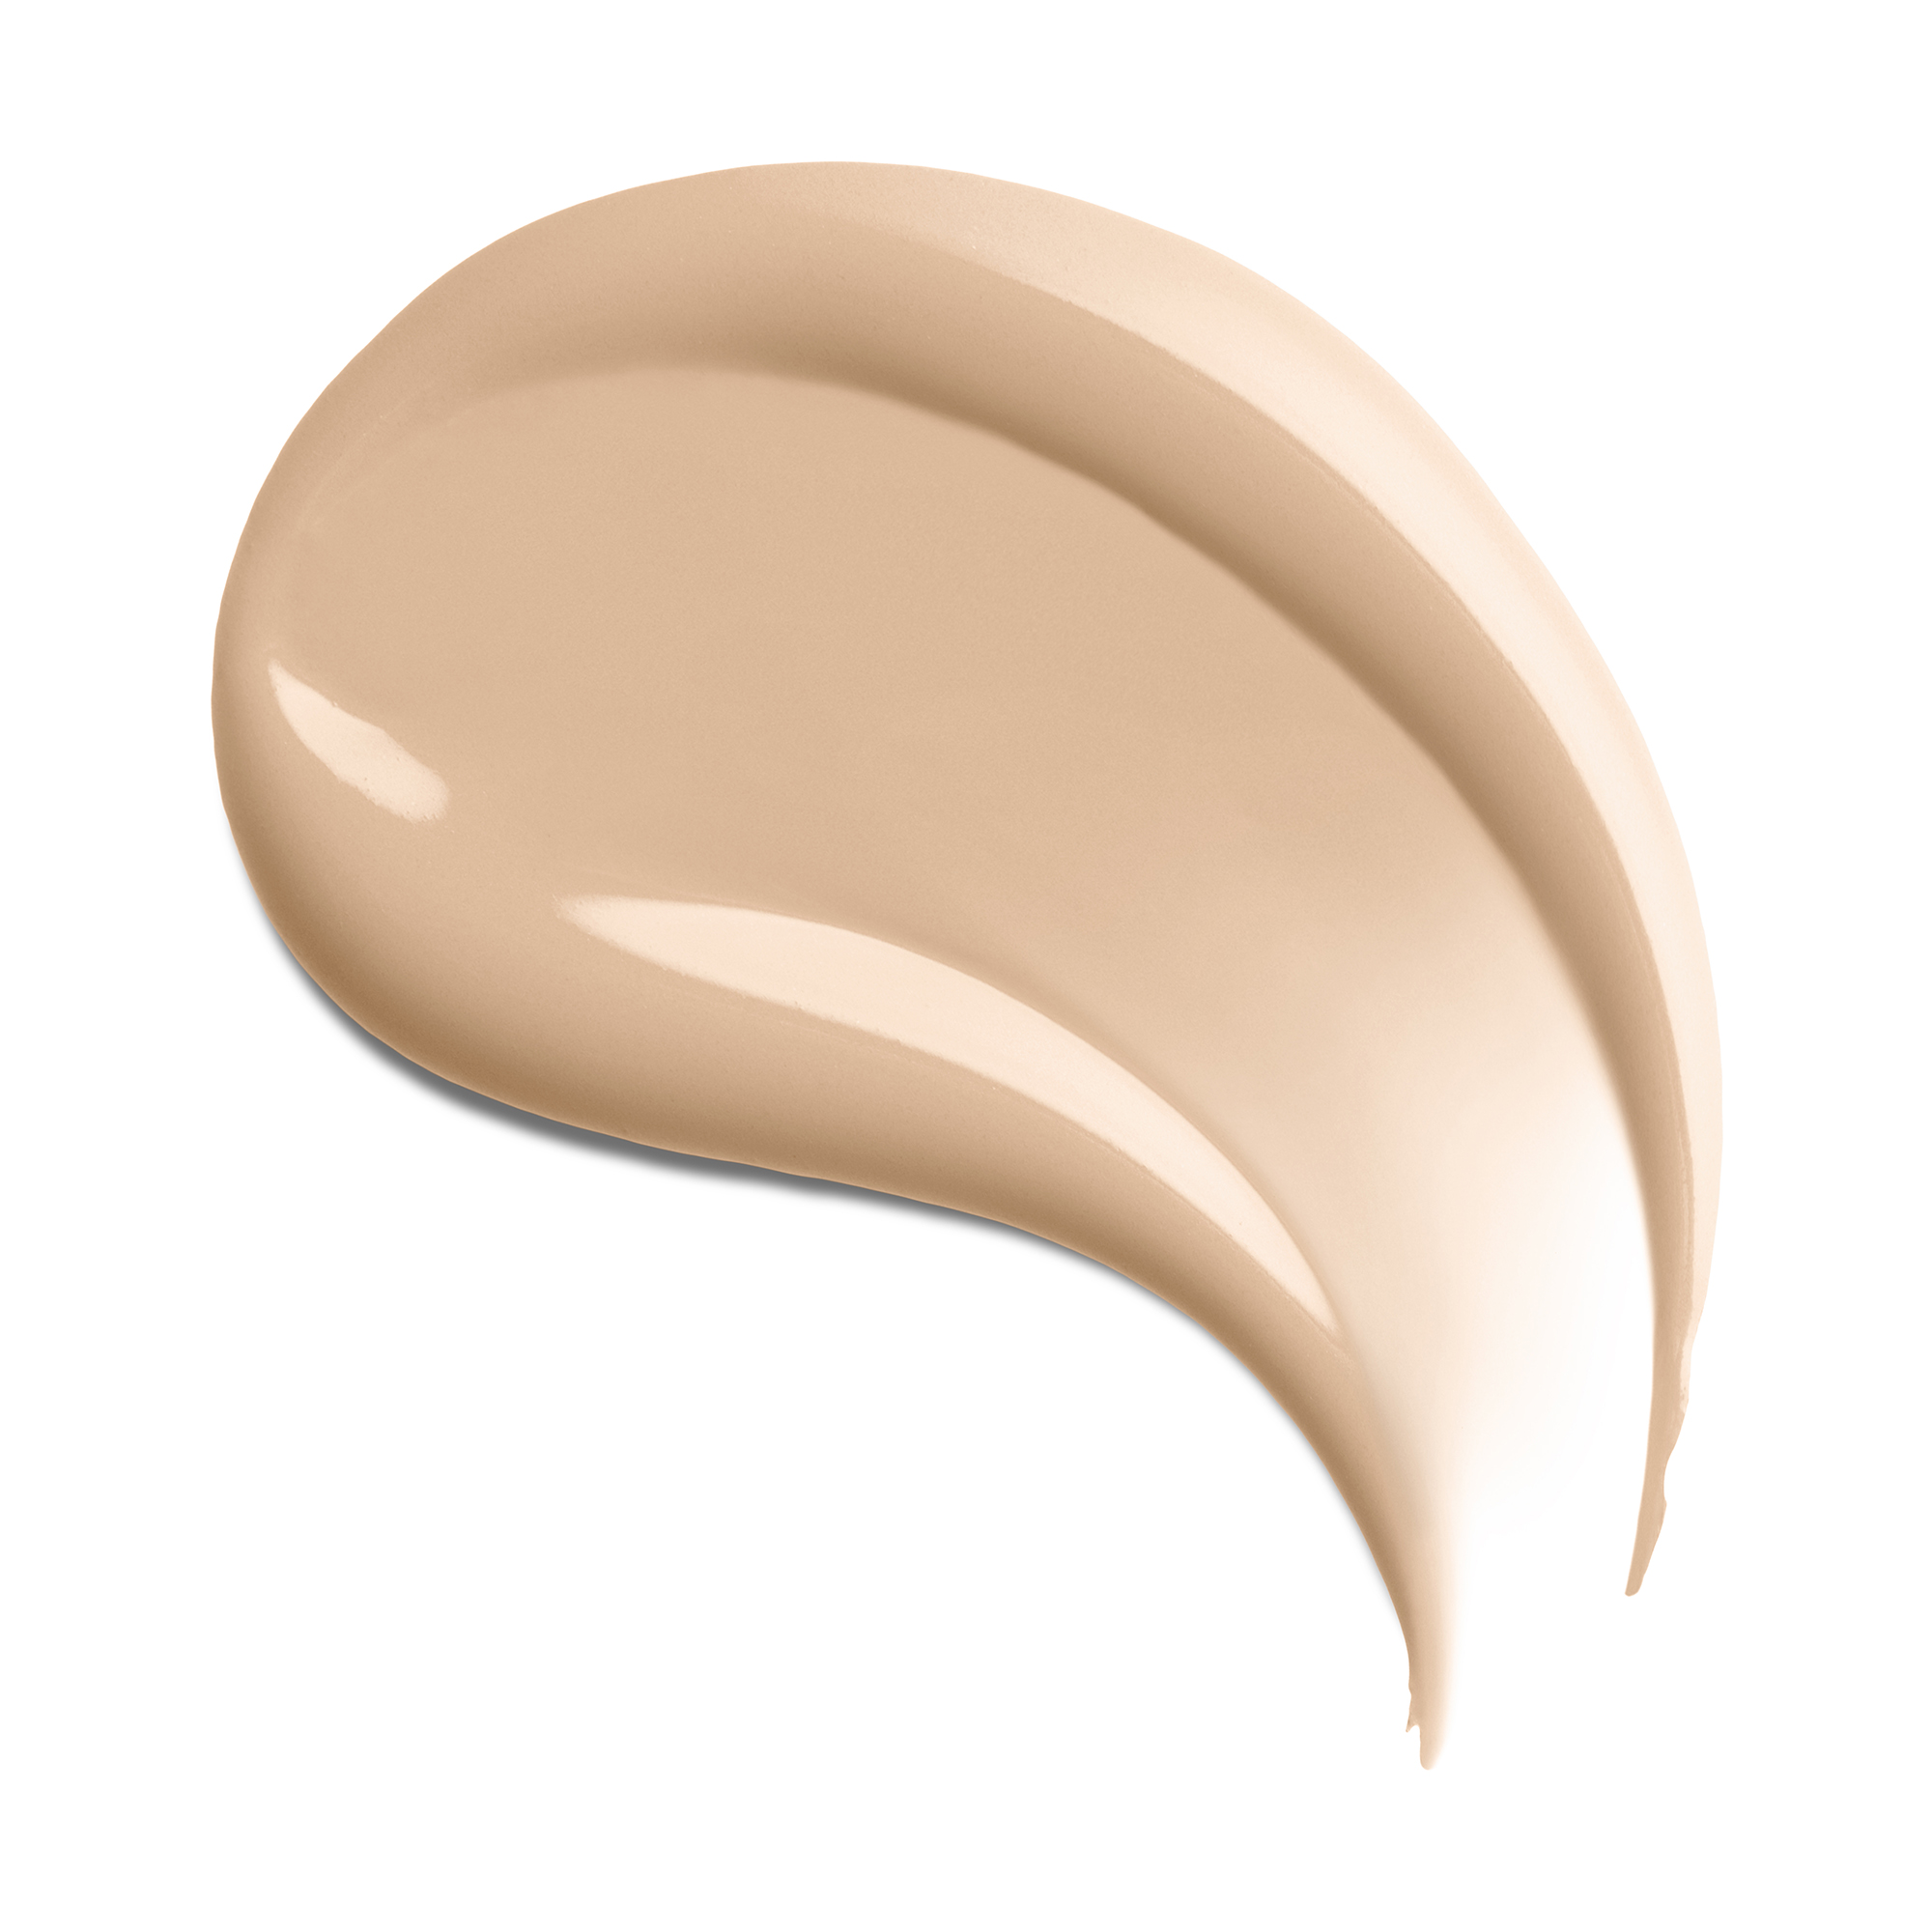 Oil Free Micro Mineral Foundation in Buttermilky by Beauty Pie